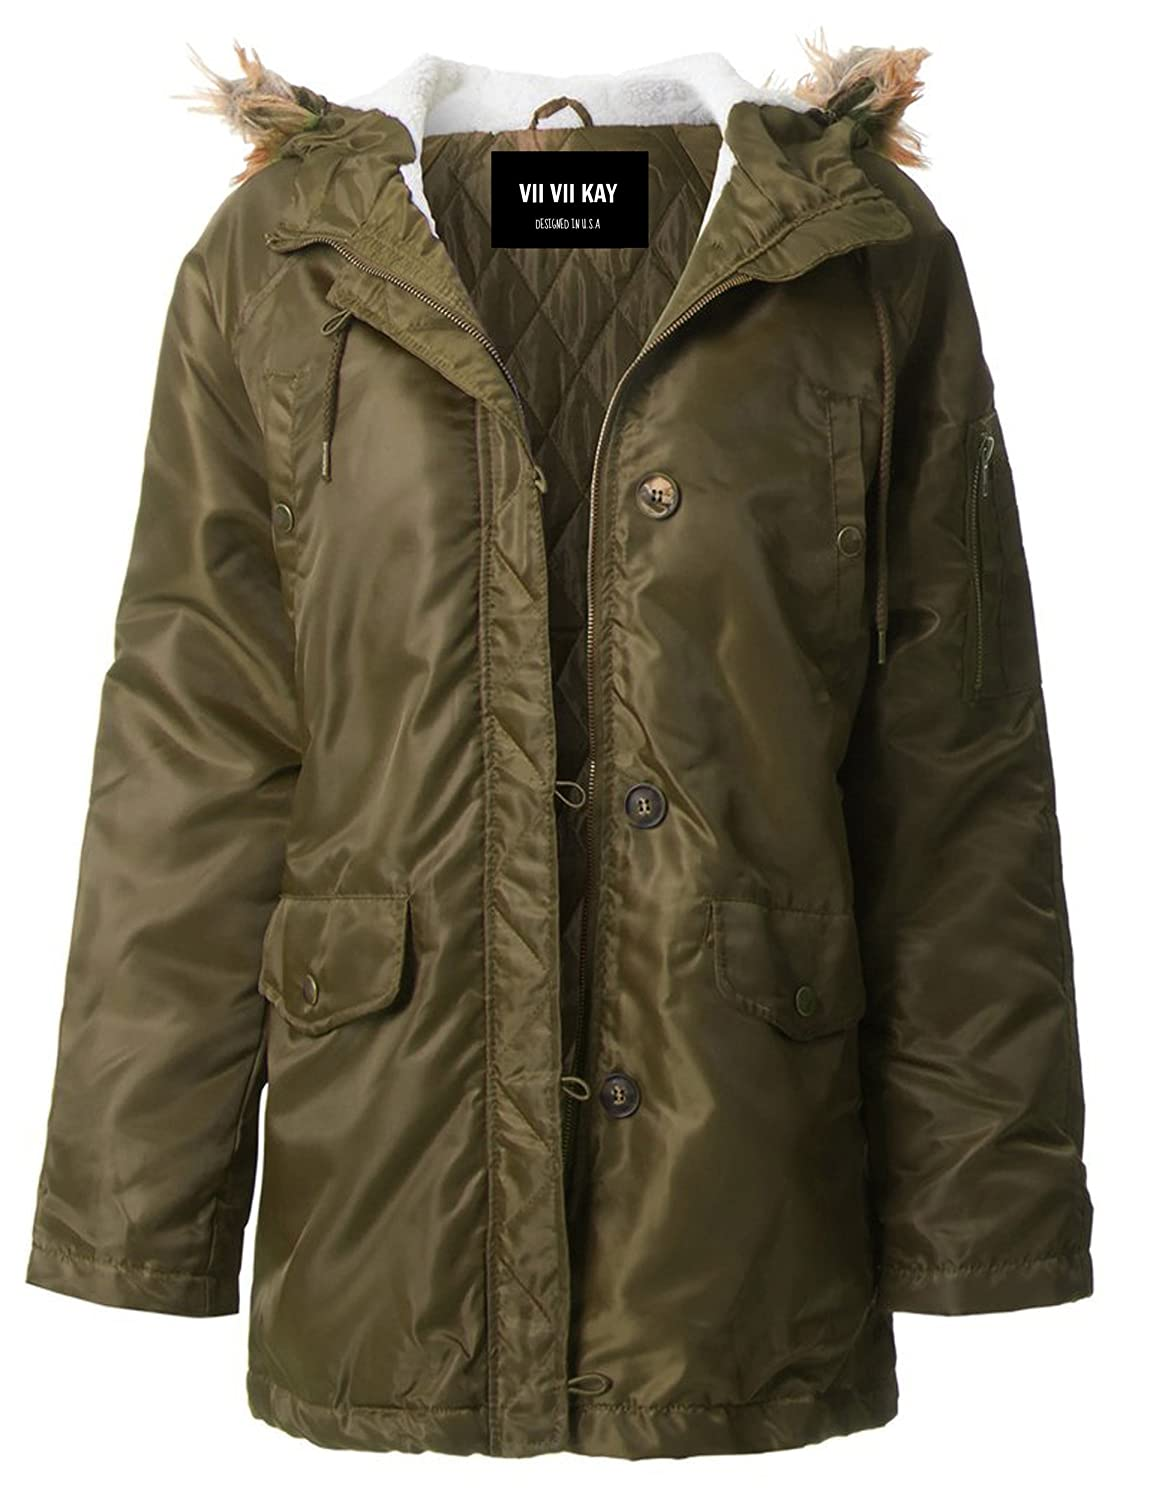 8e00108b95f9c Stay winter ready with our new sherpa fleece lilned anorak jackets    quilted padded jackets. Versatile piece for a range of weathers